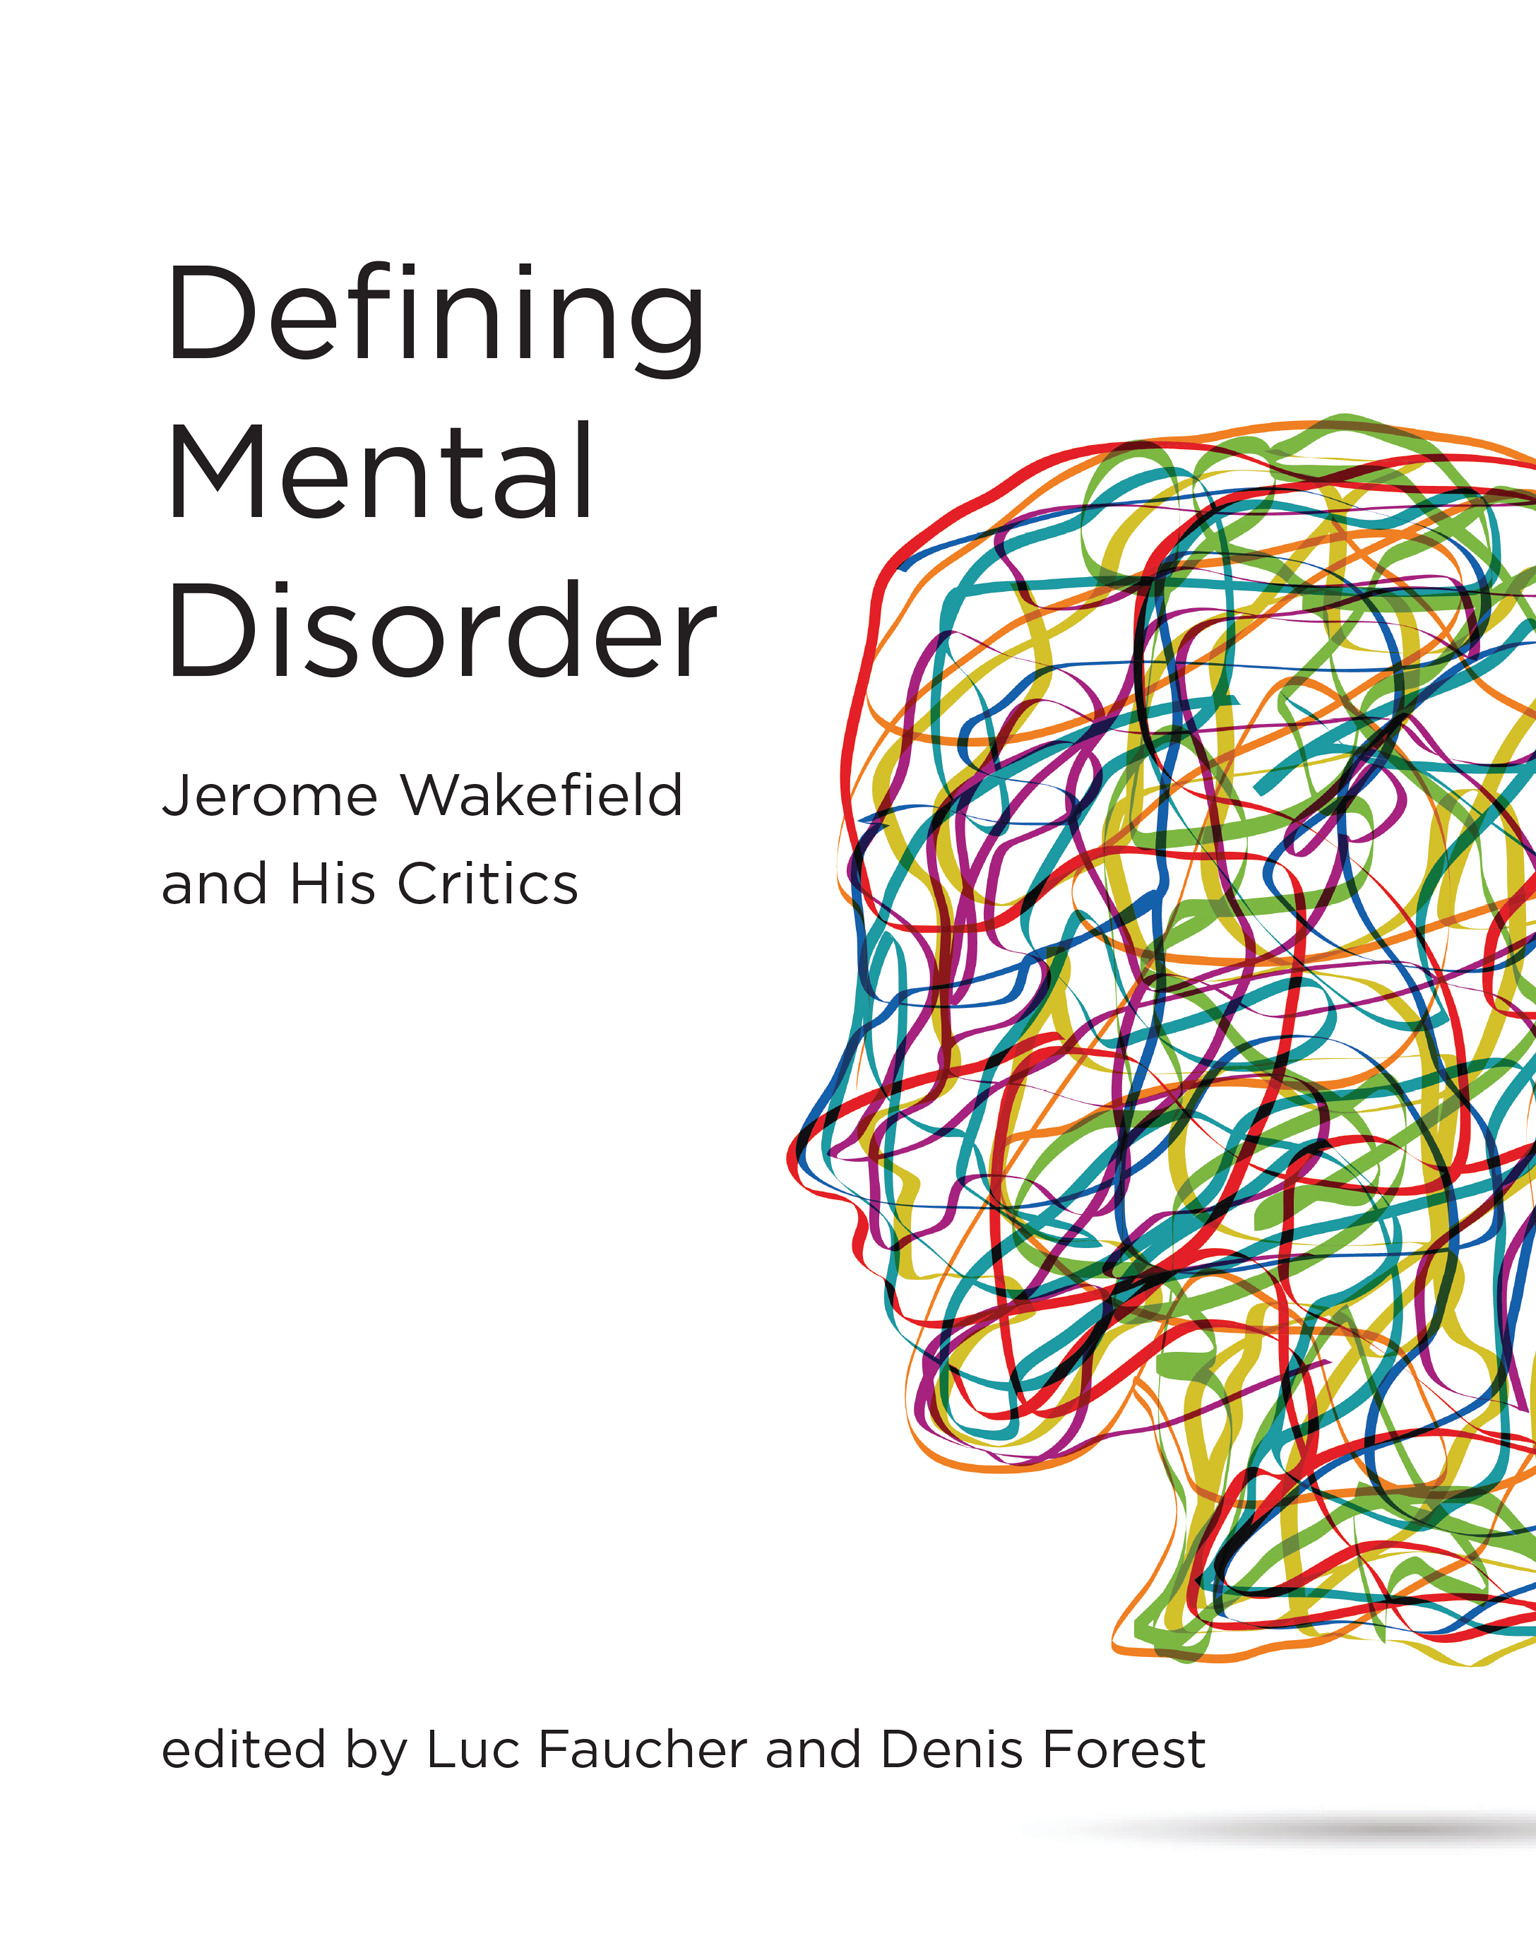 Defining Mental Disorder